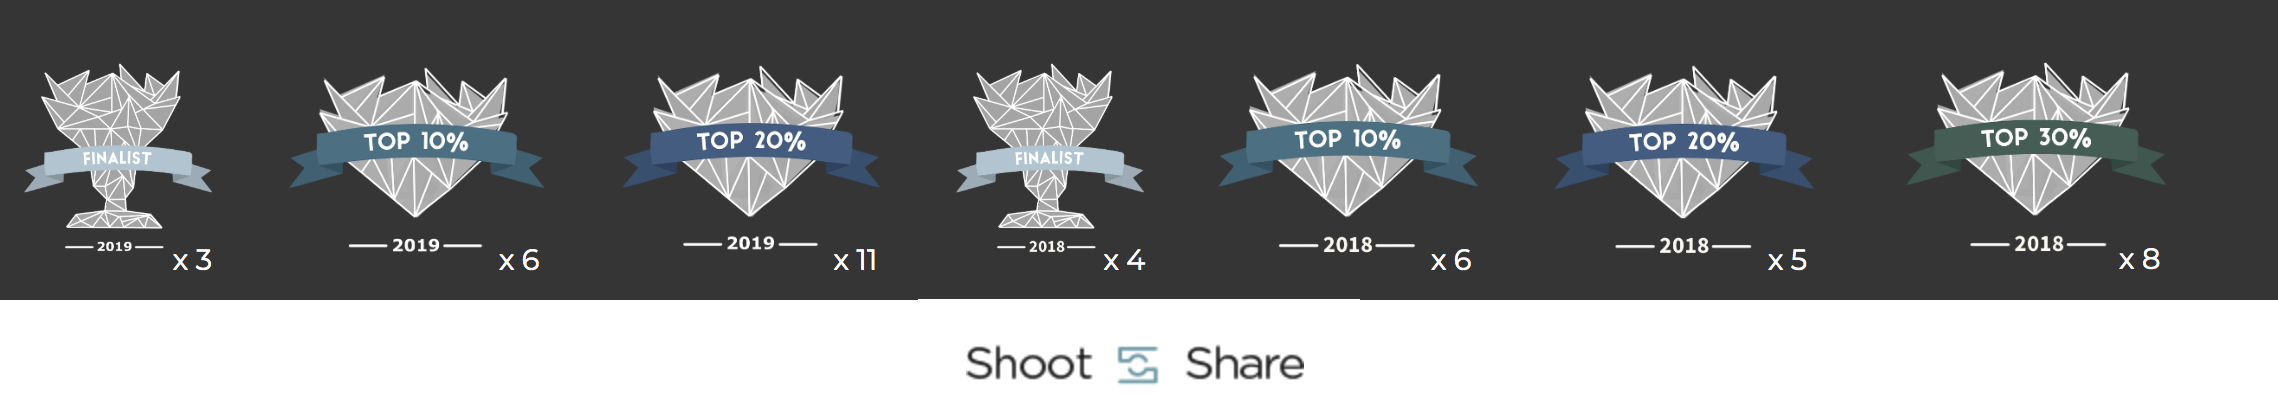 shoot&share.png